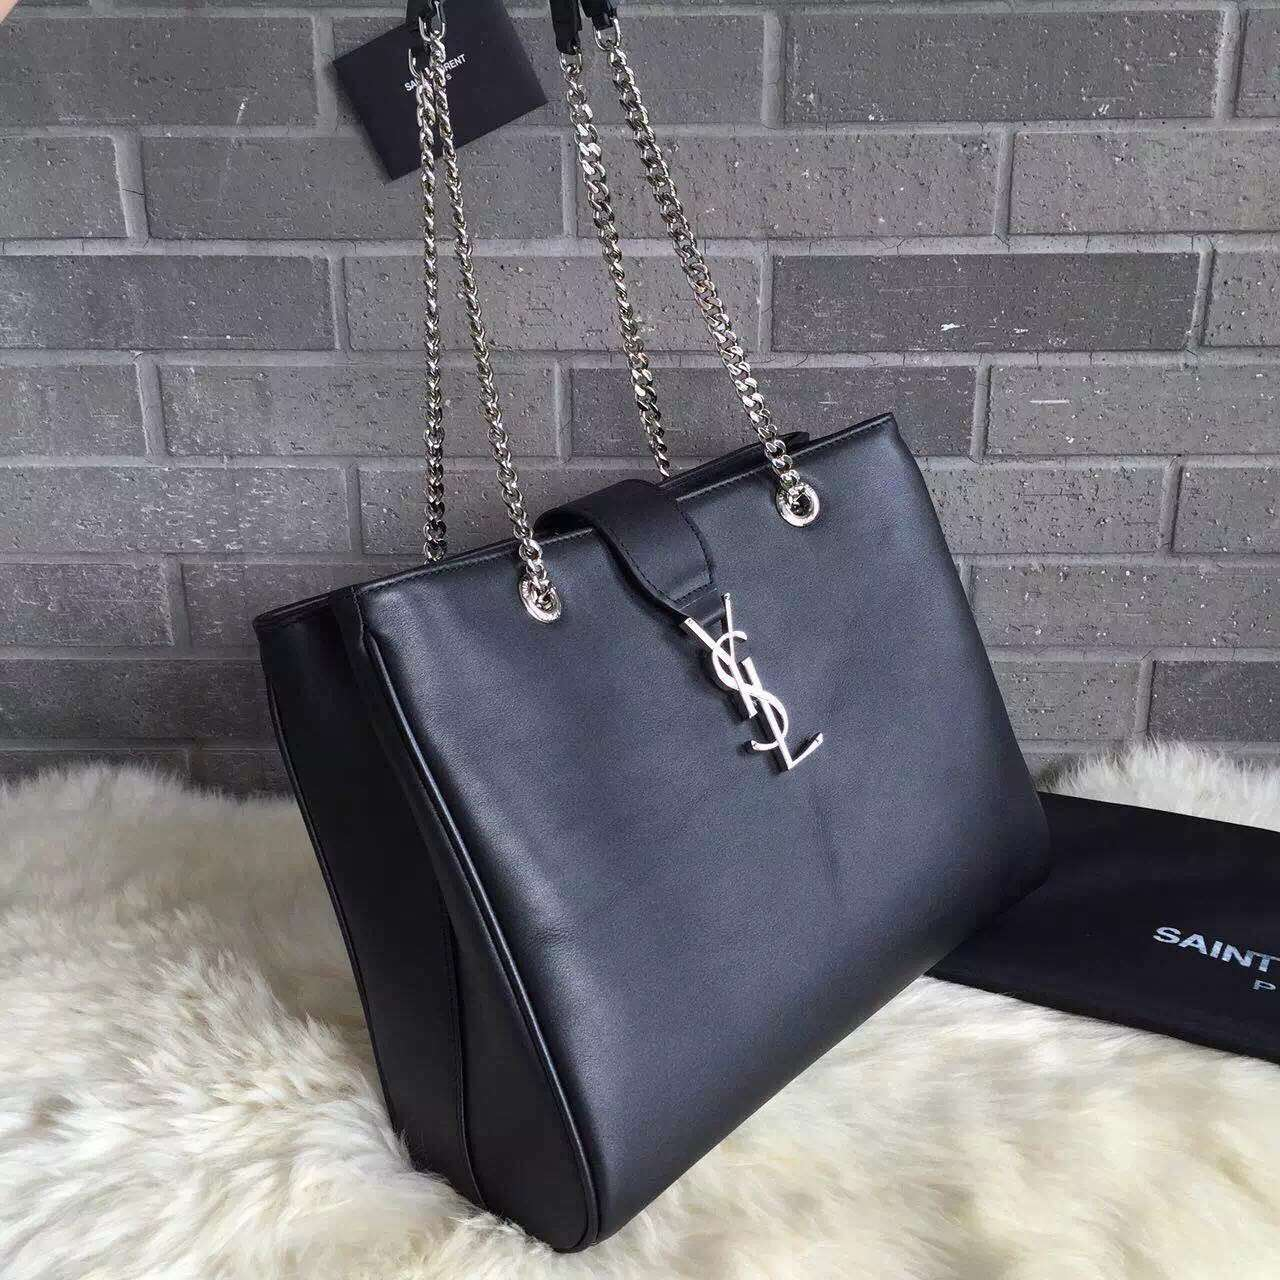 2015 New Saint Laurent Bag Cheap Sale-Saint Laurent Classic Monogram Shopping Bag in Black Smooth Calfskin Leather with Silver Chain